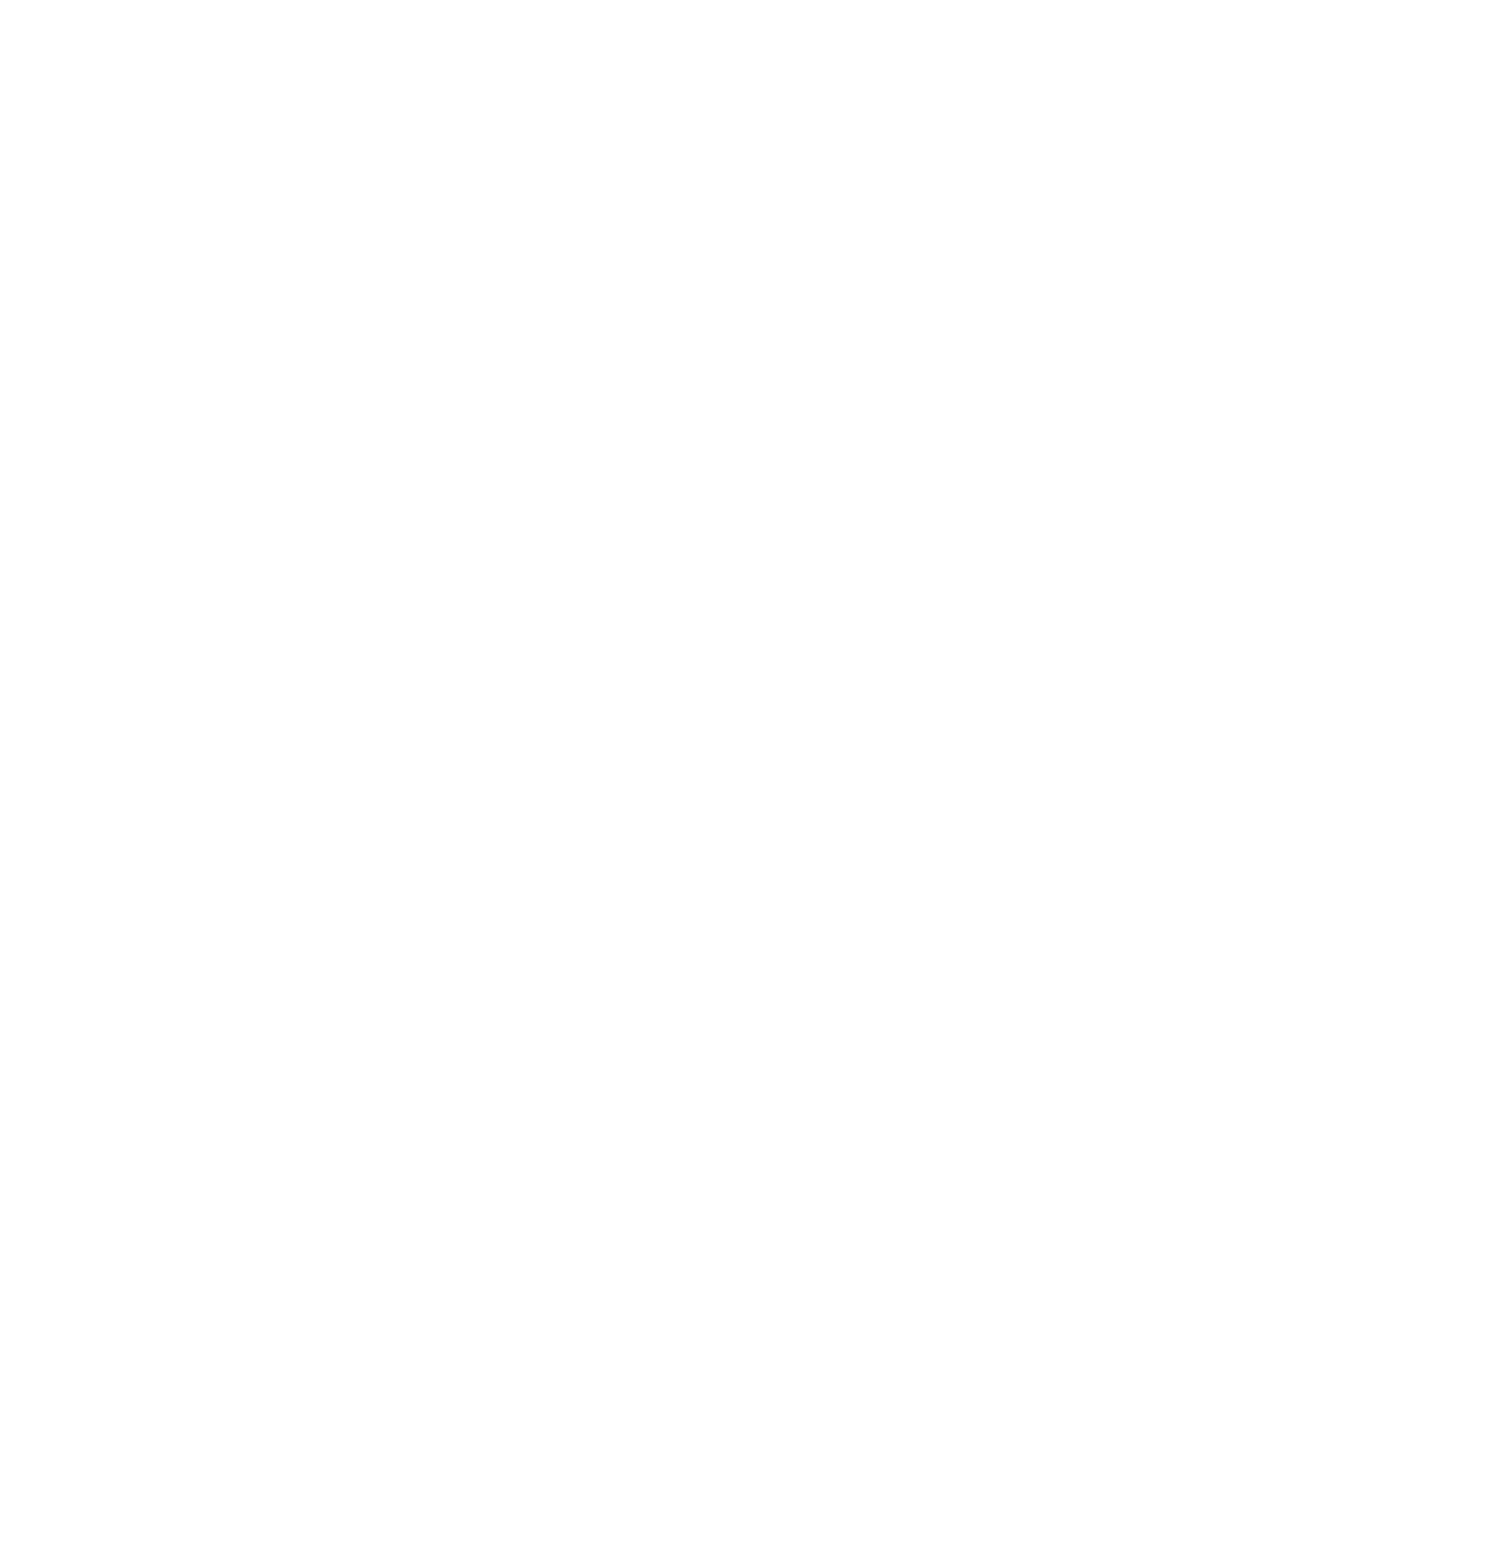 help my houseplants